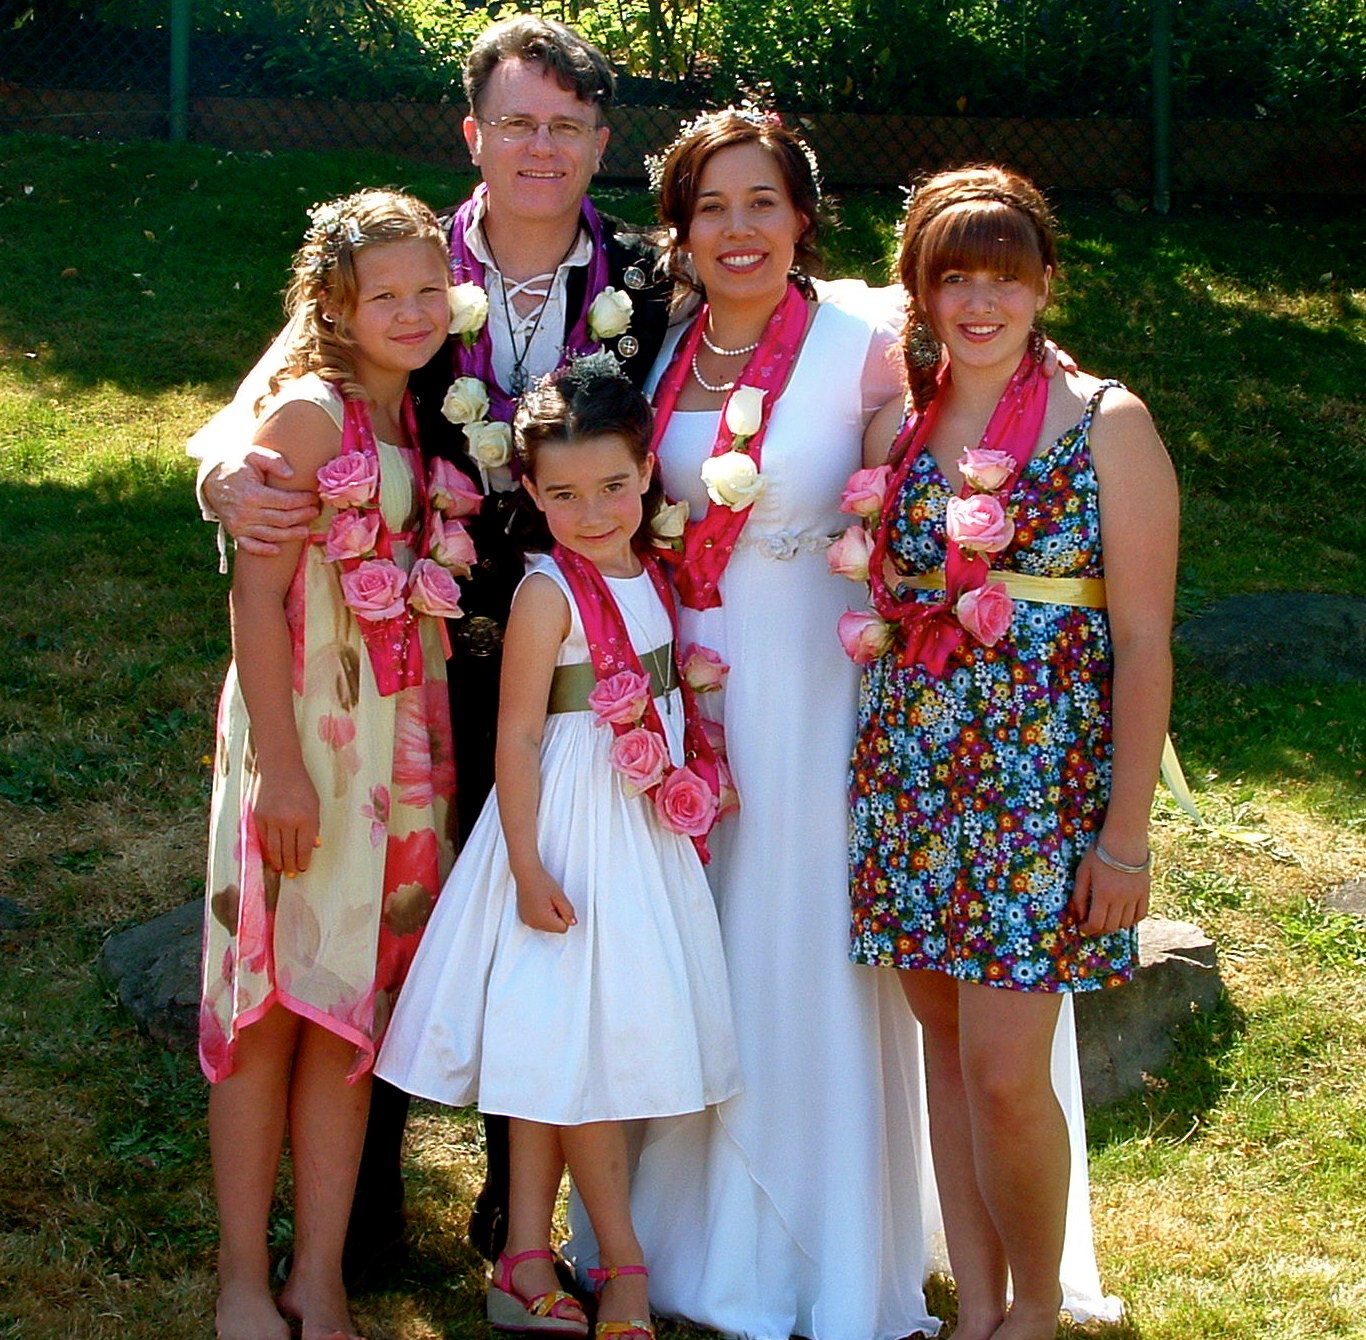 Our Happy Family just after the Wedding Ceremony, Saturday 11 July 2009.